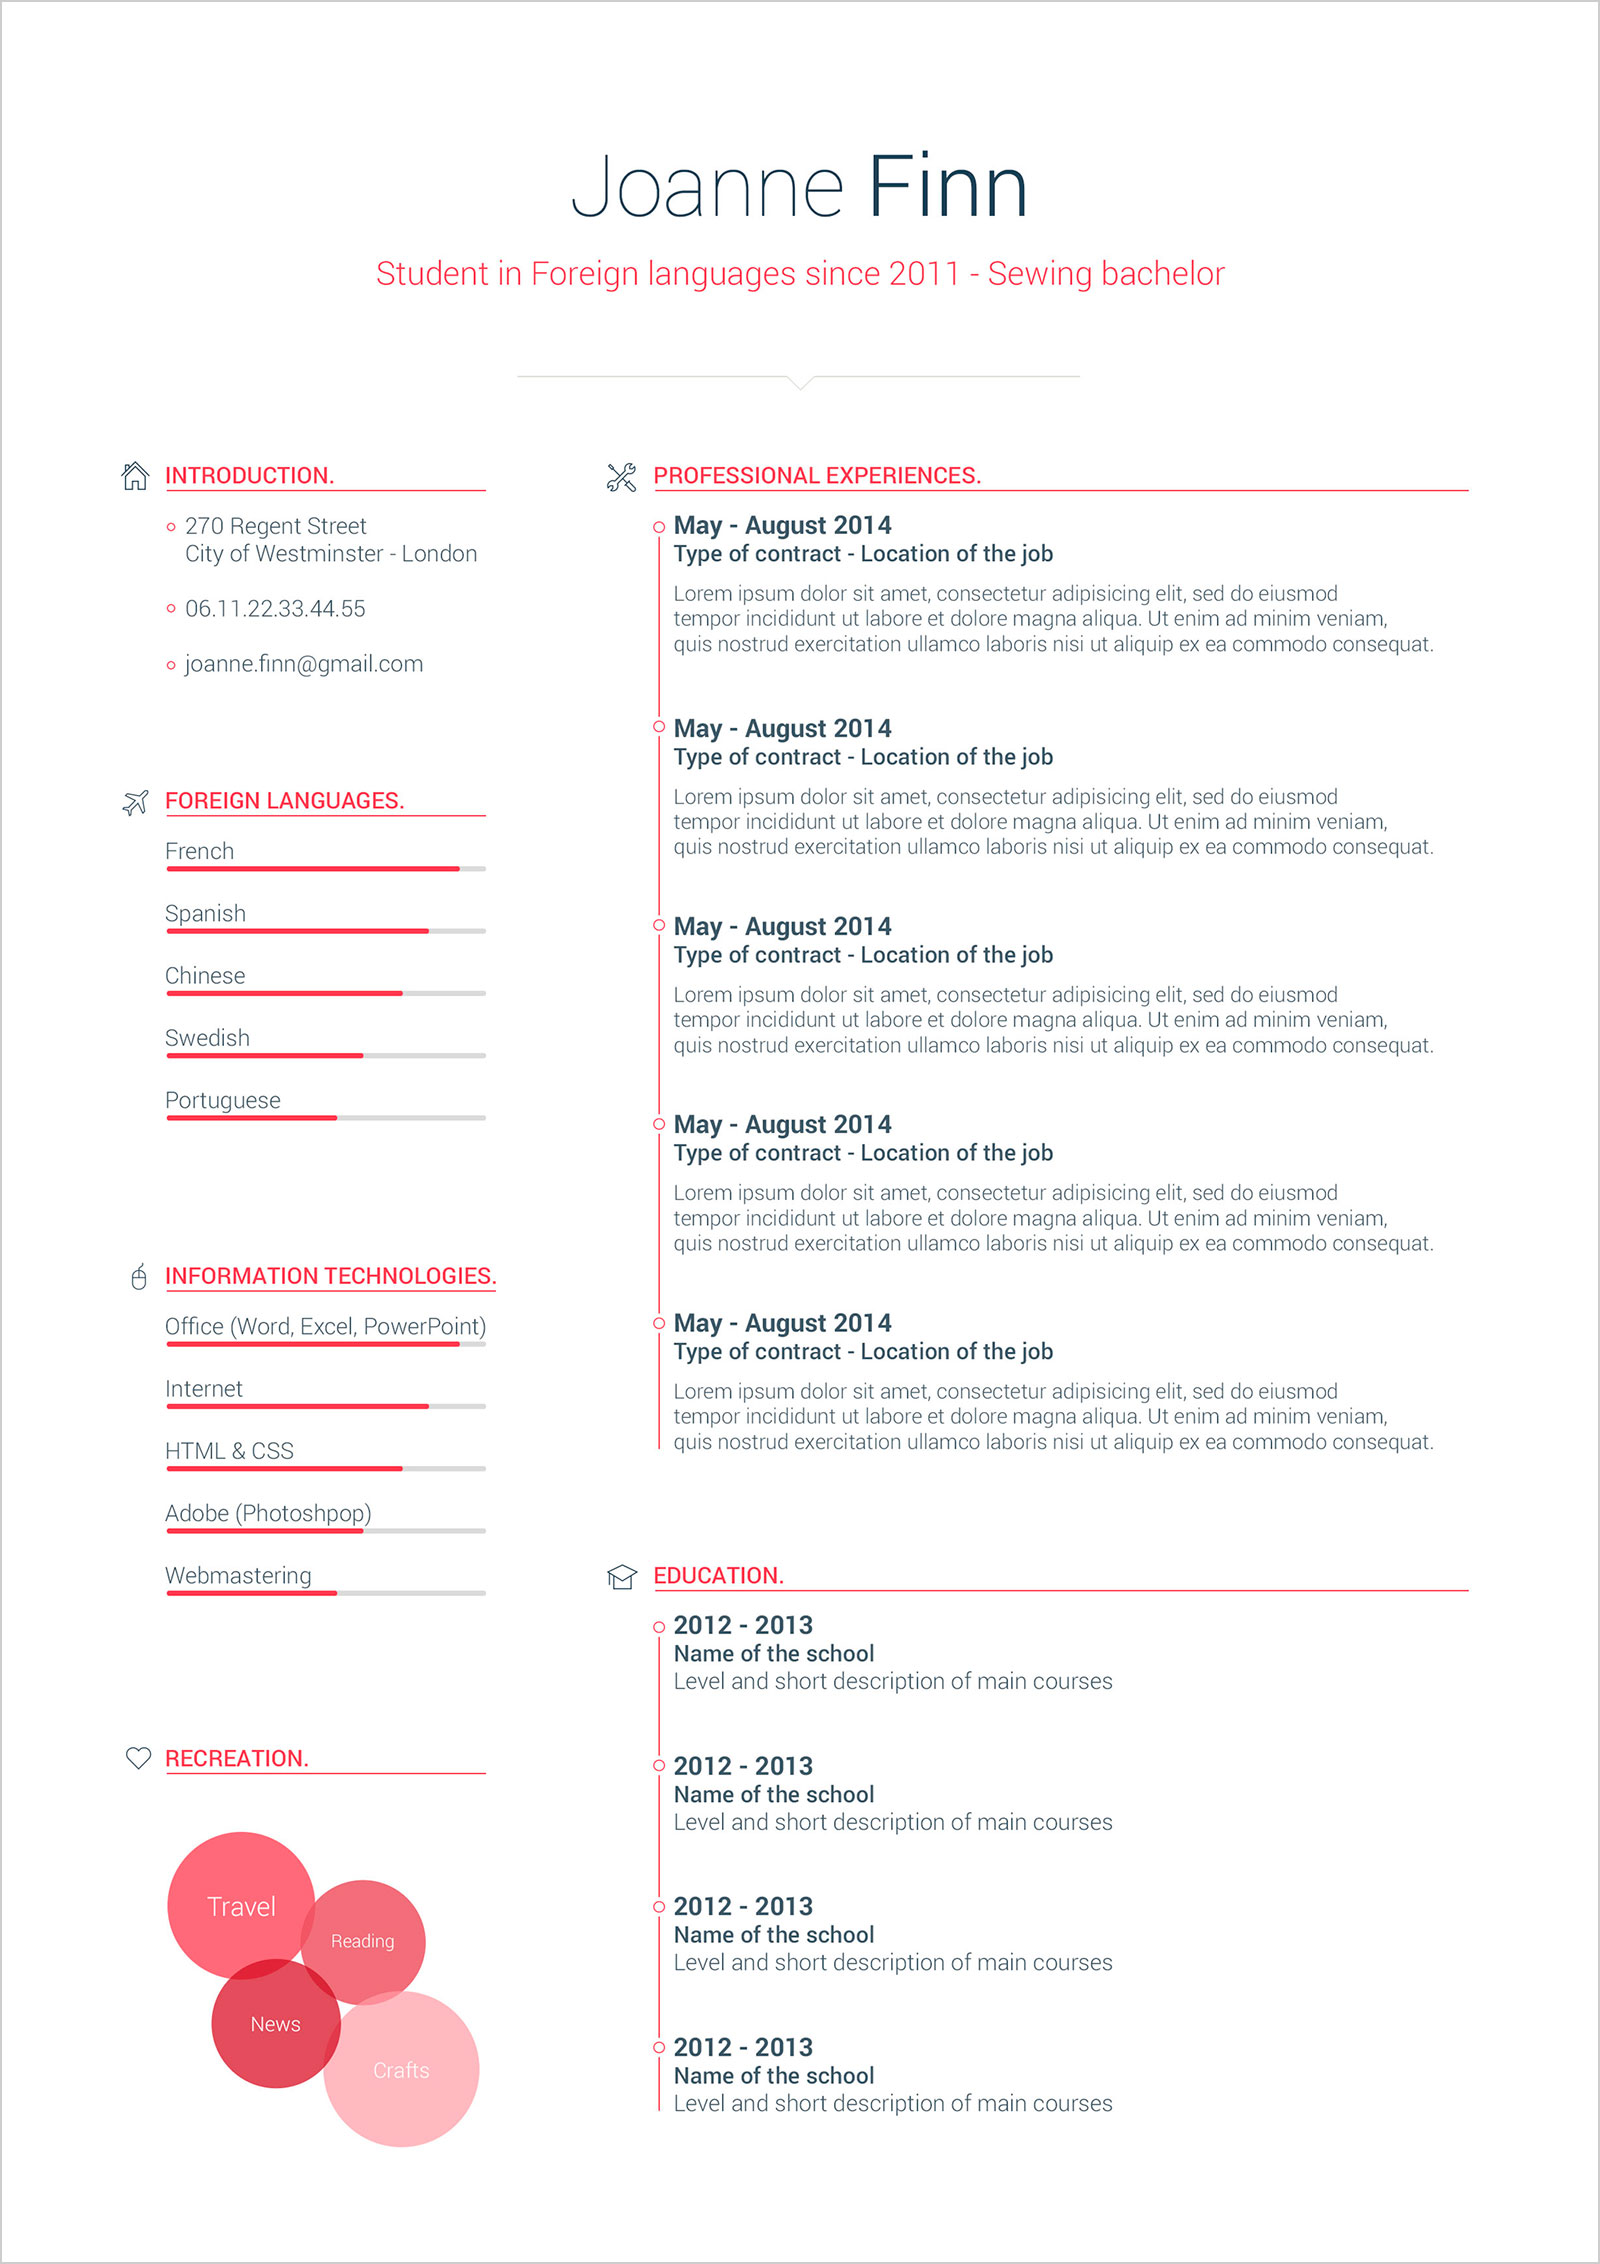 Free-Simple-CV-Design-Template-in-PSD-&-Word-Format